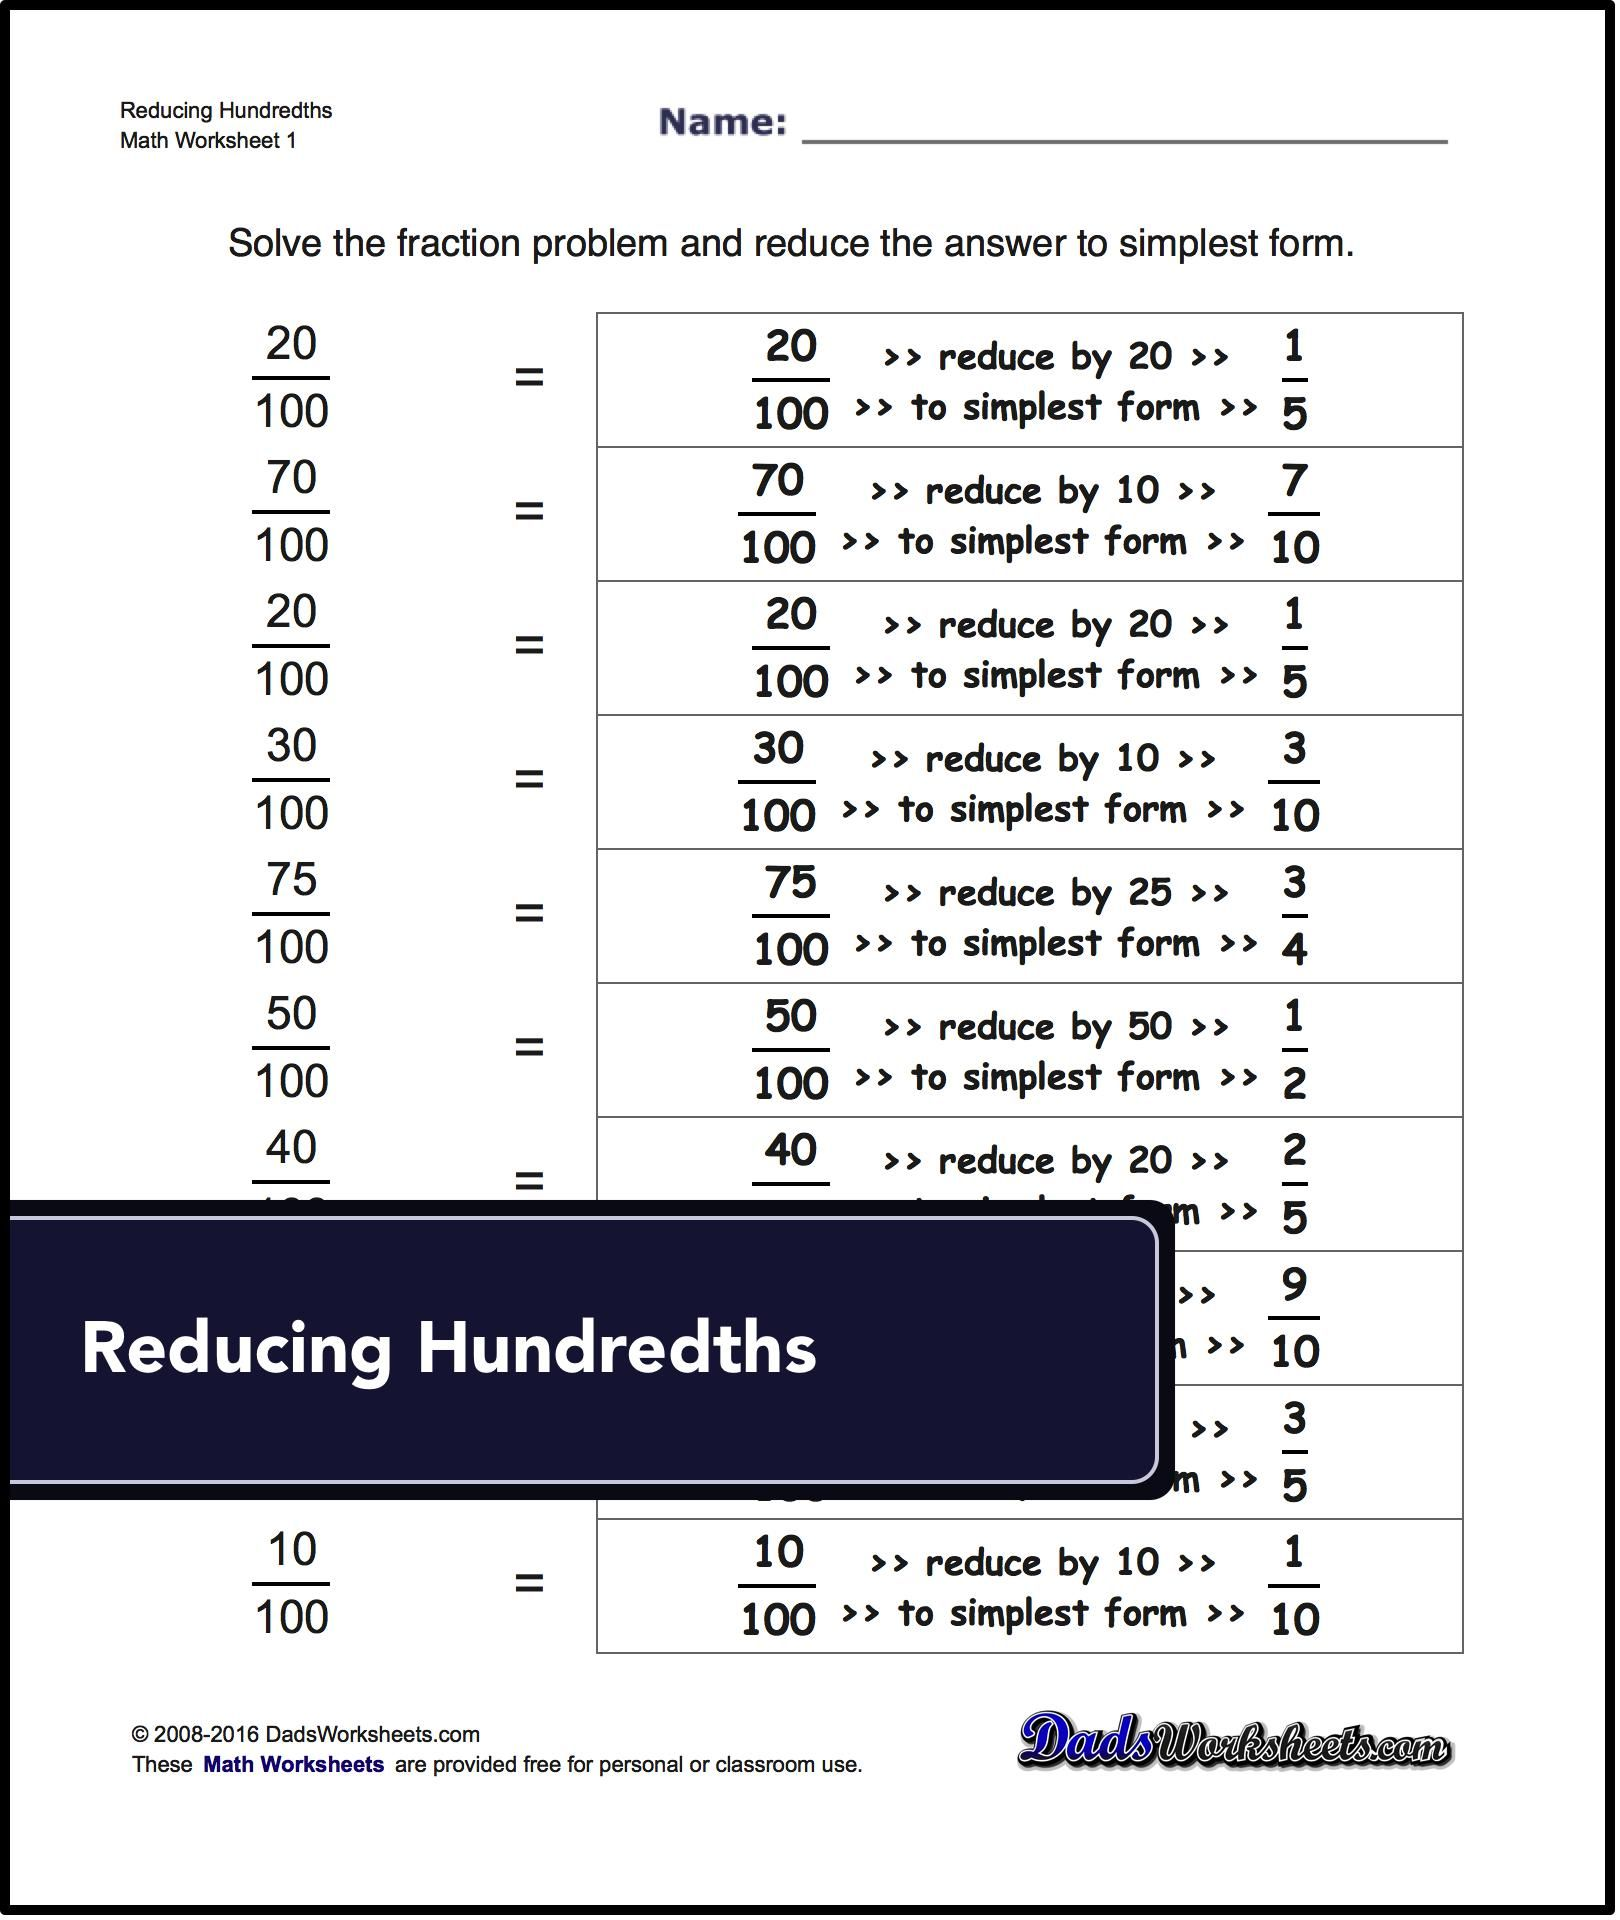 These Worksheets Deal With Reducing Common Fractions To